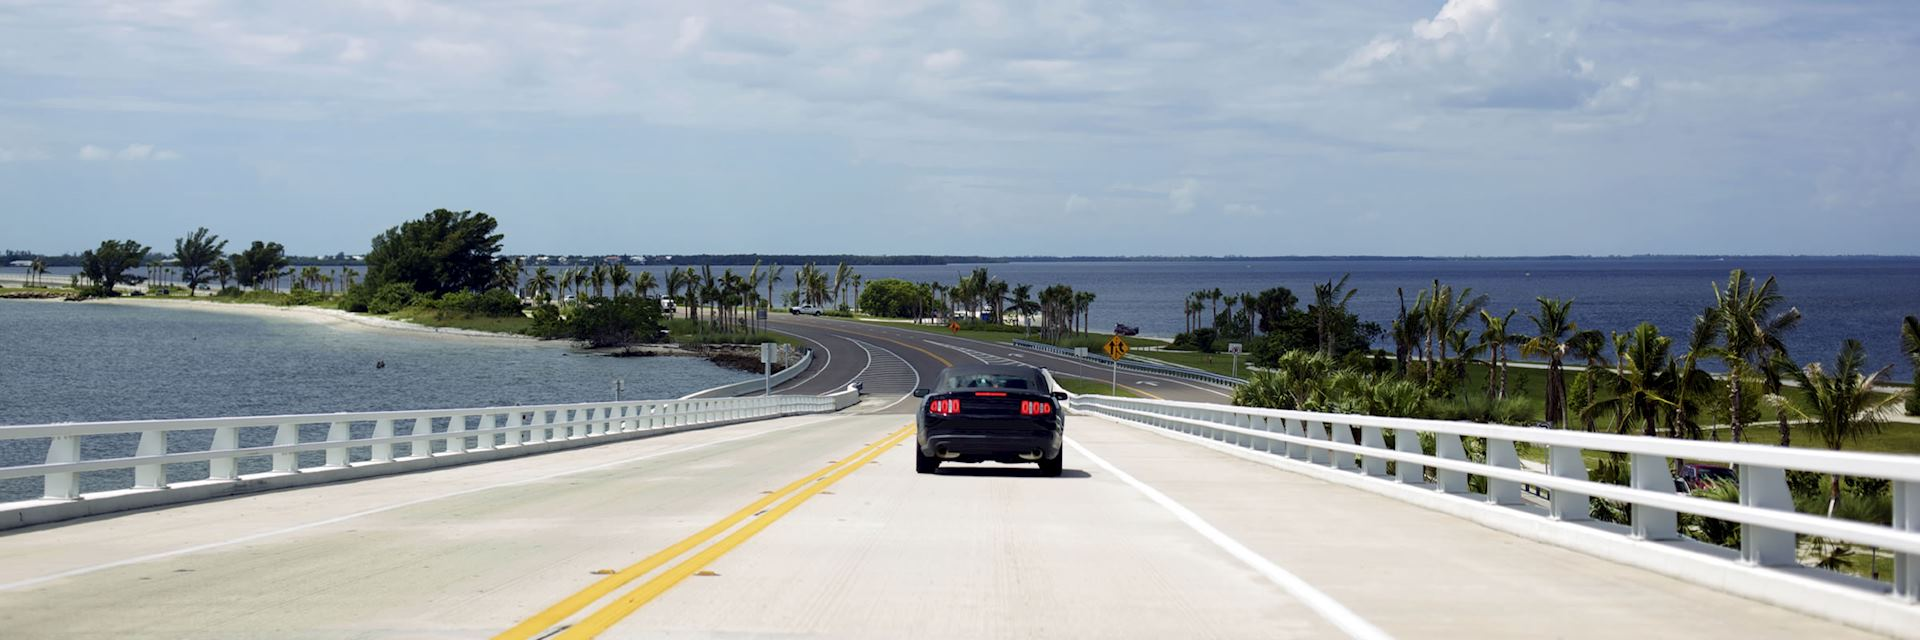 Sanibel Island Highway